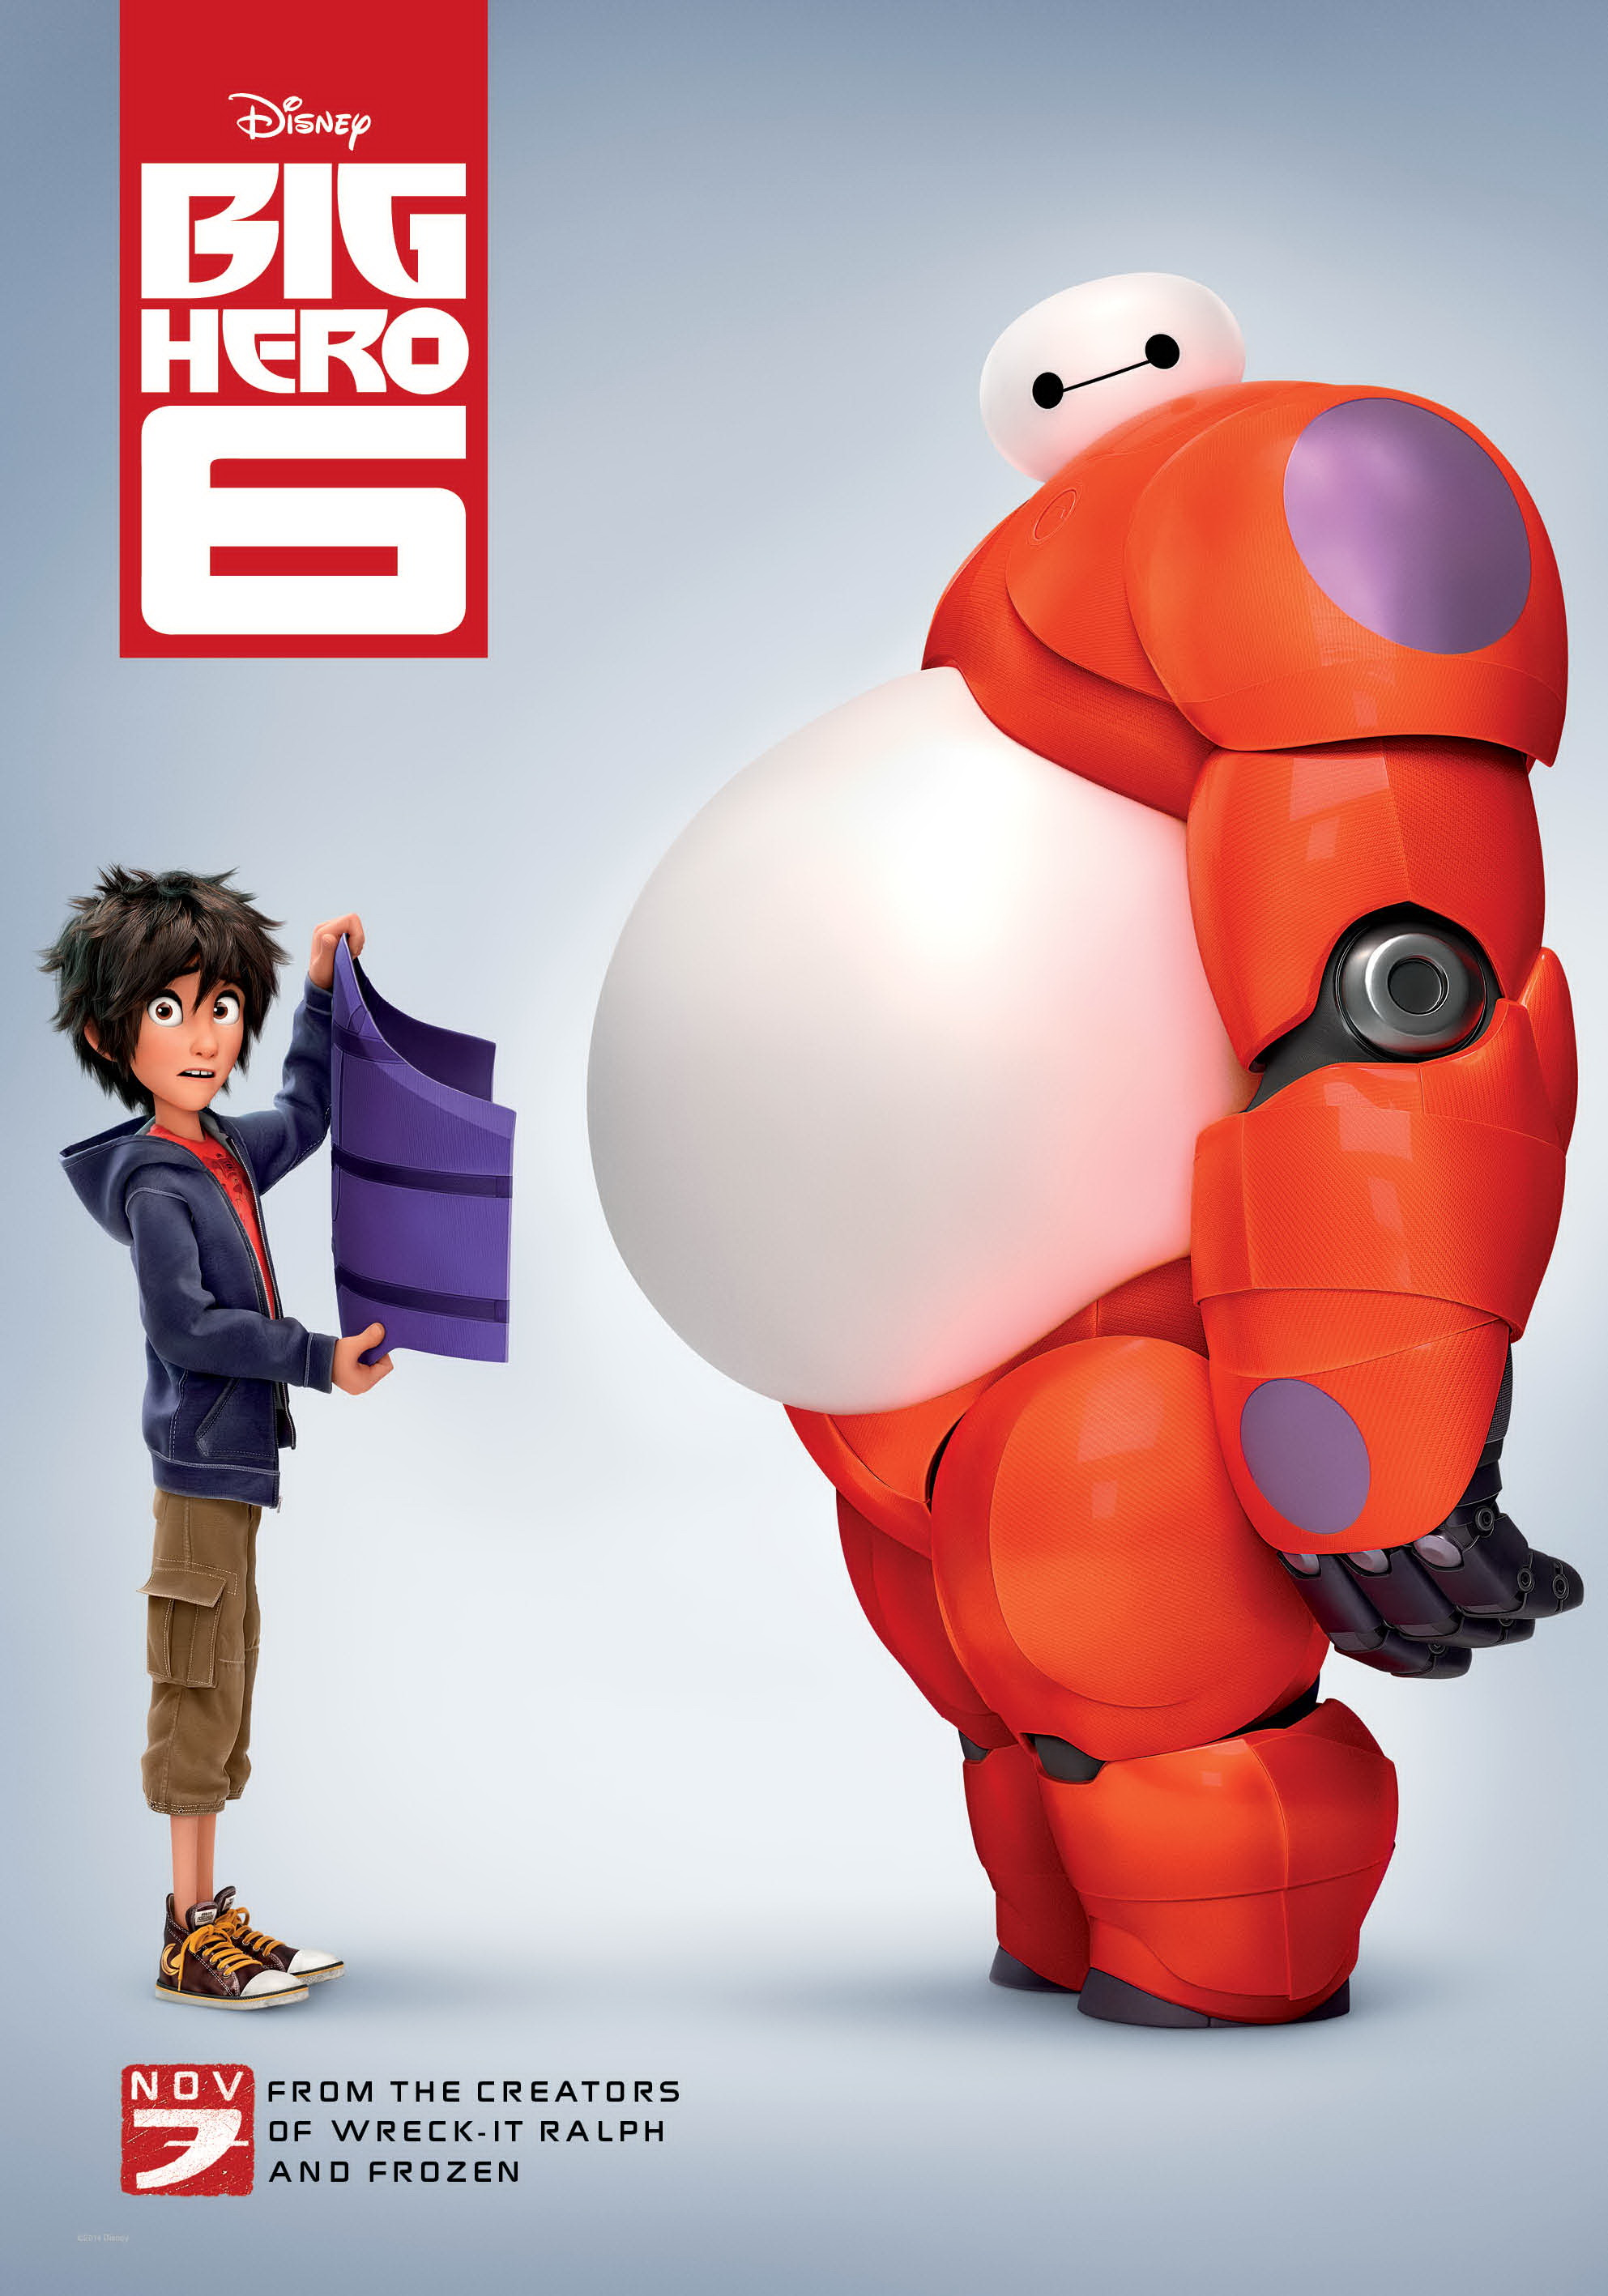 Oscars2015, Big Hero6